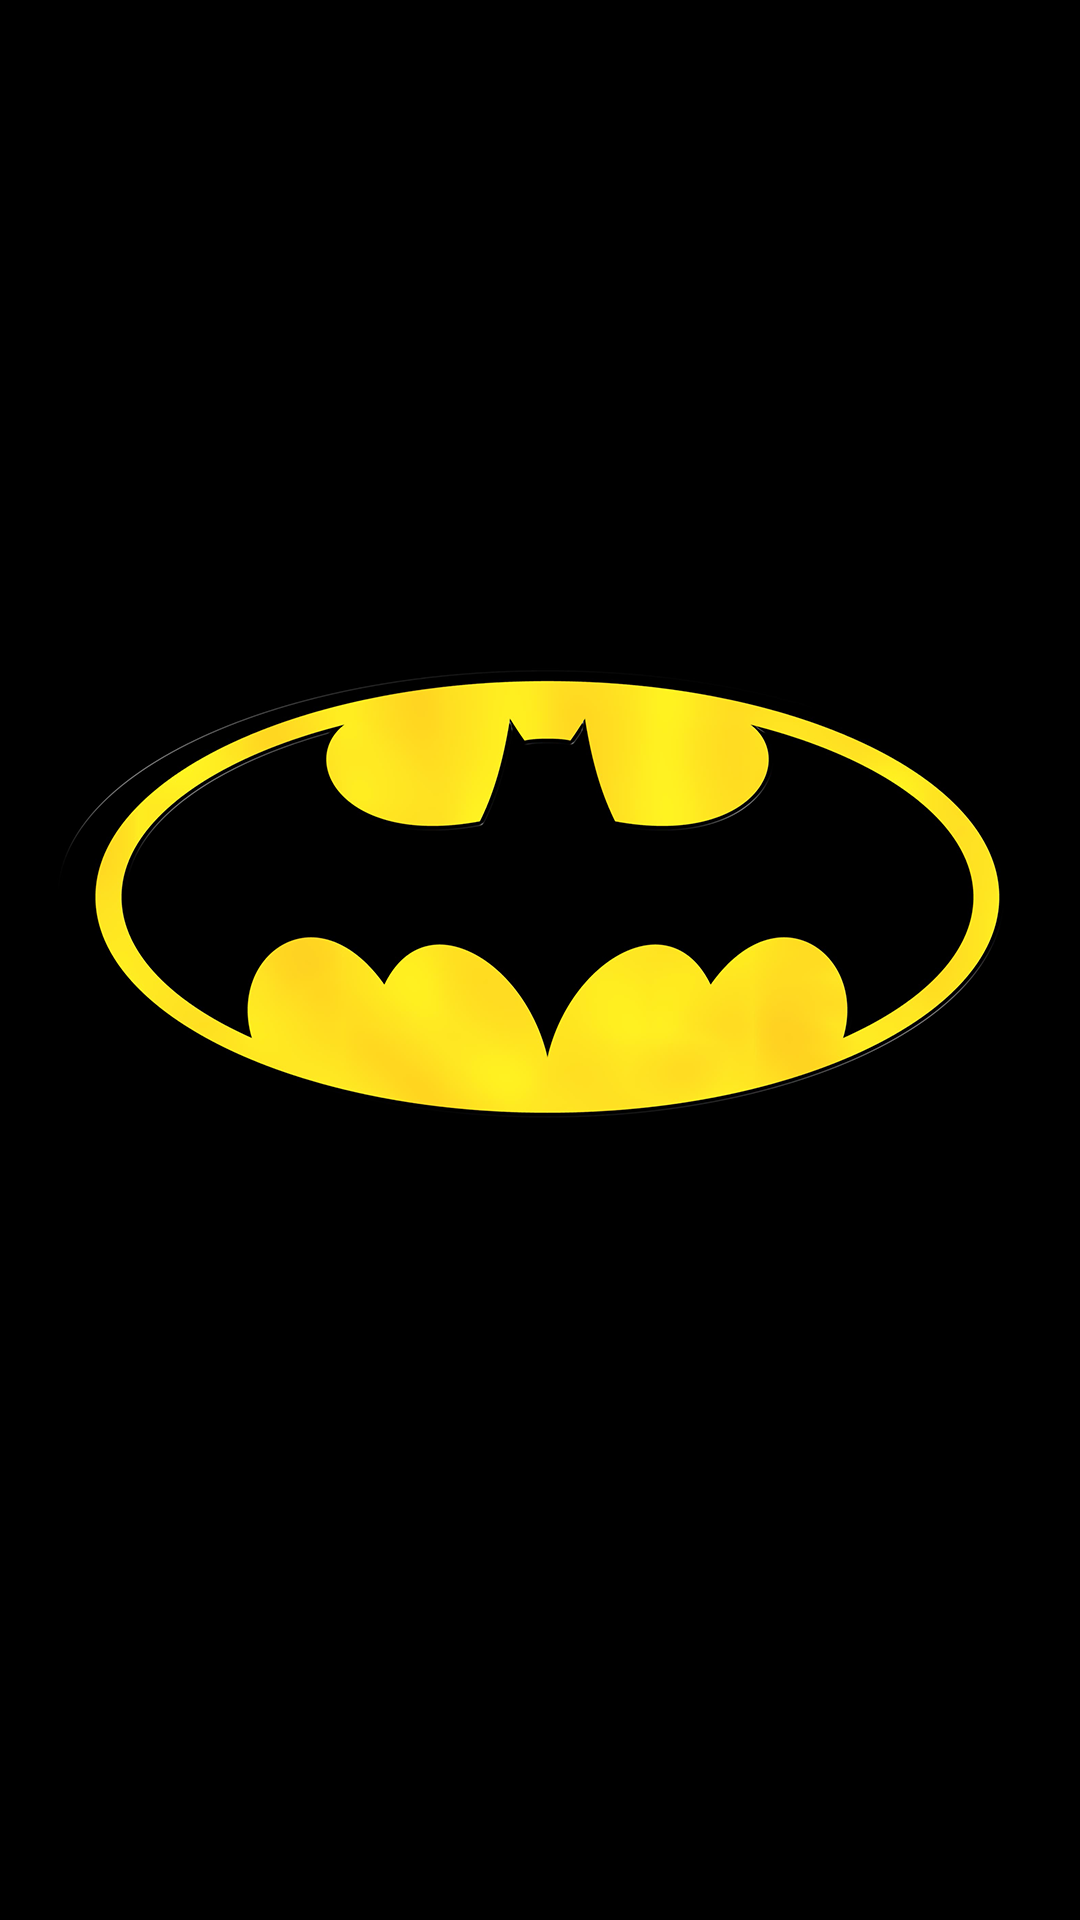 Ultra Hd Original Batman Wallpaper For Your Mobile Phone 0196